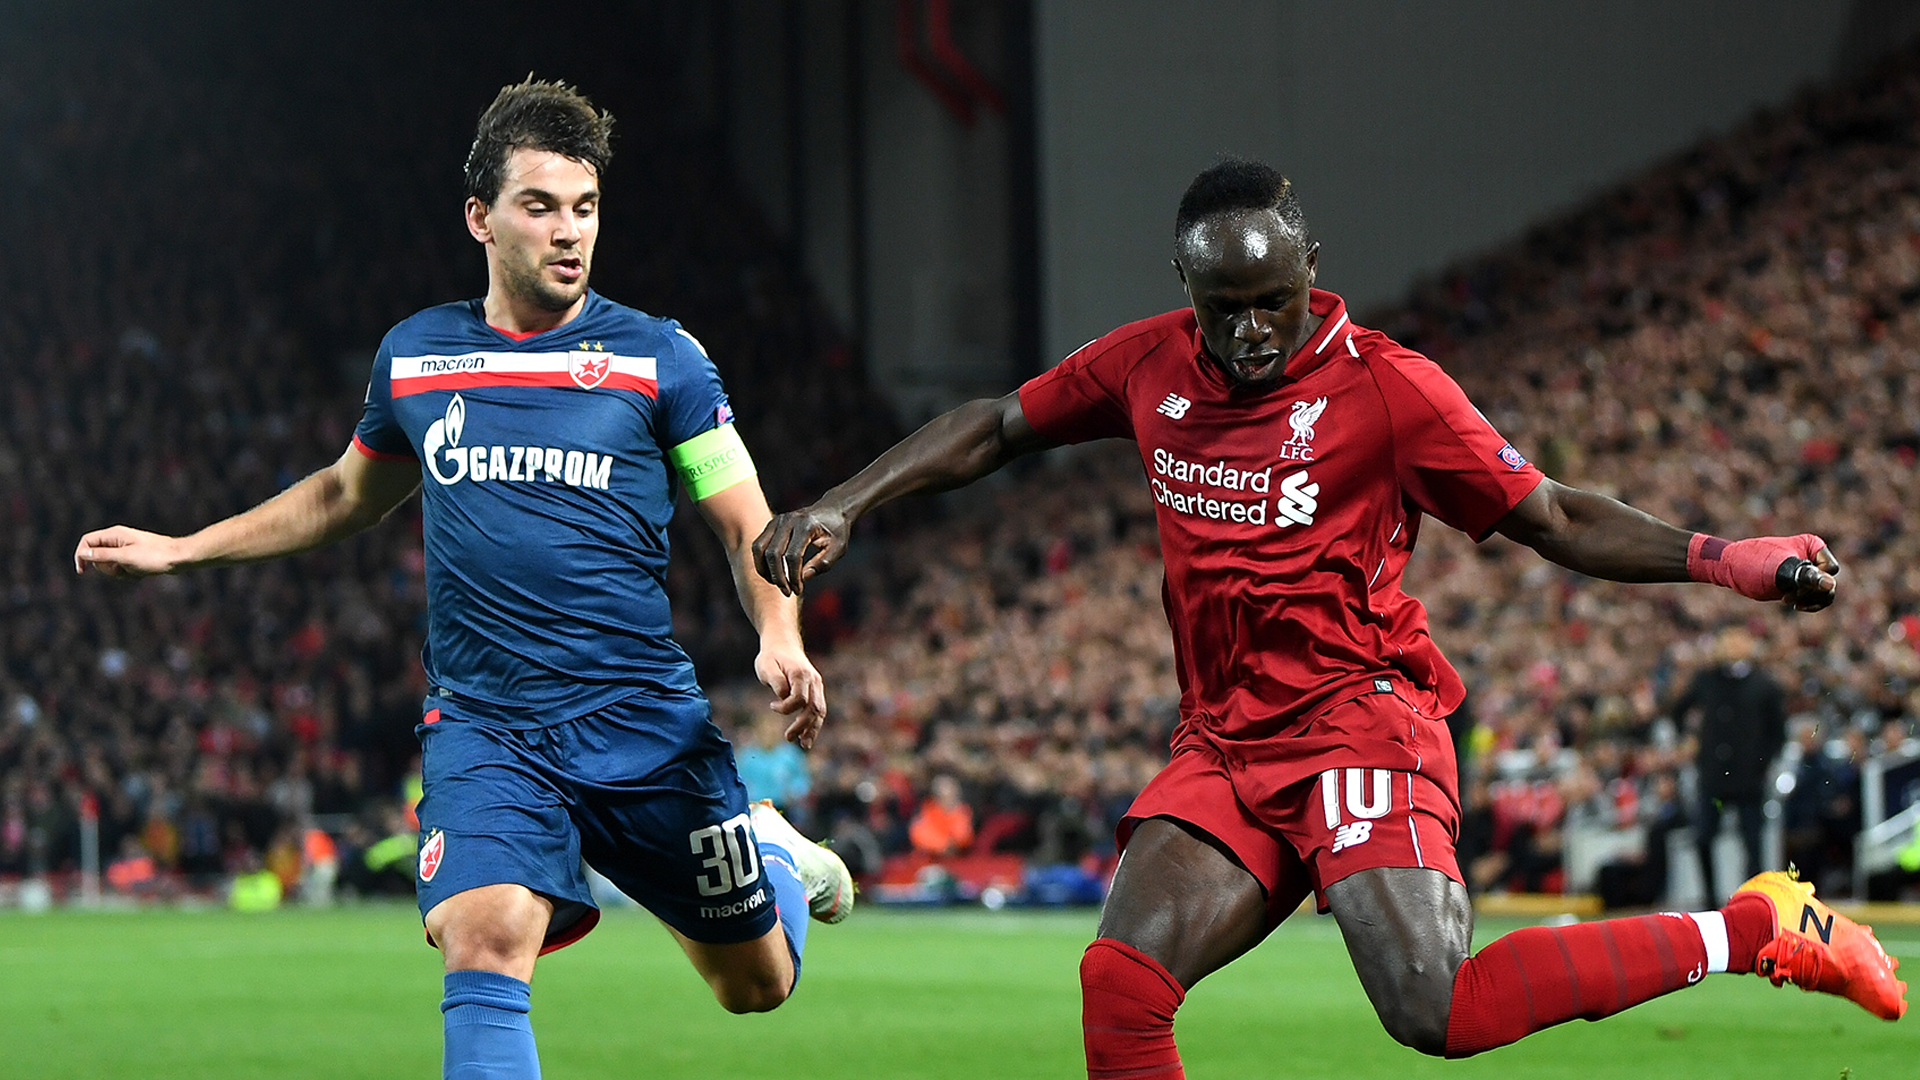 Liverpool Red Star 2018-19 Champions League Sadio Mane